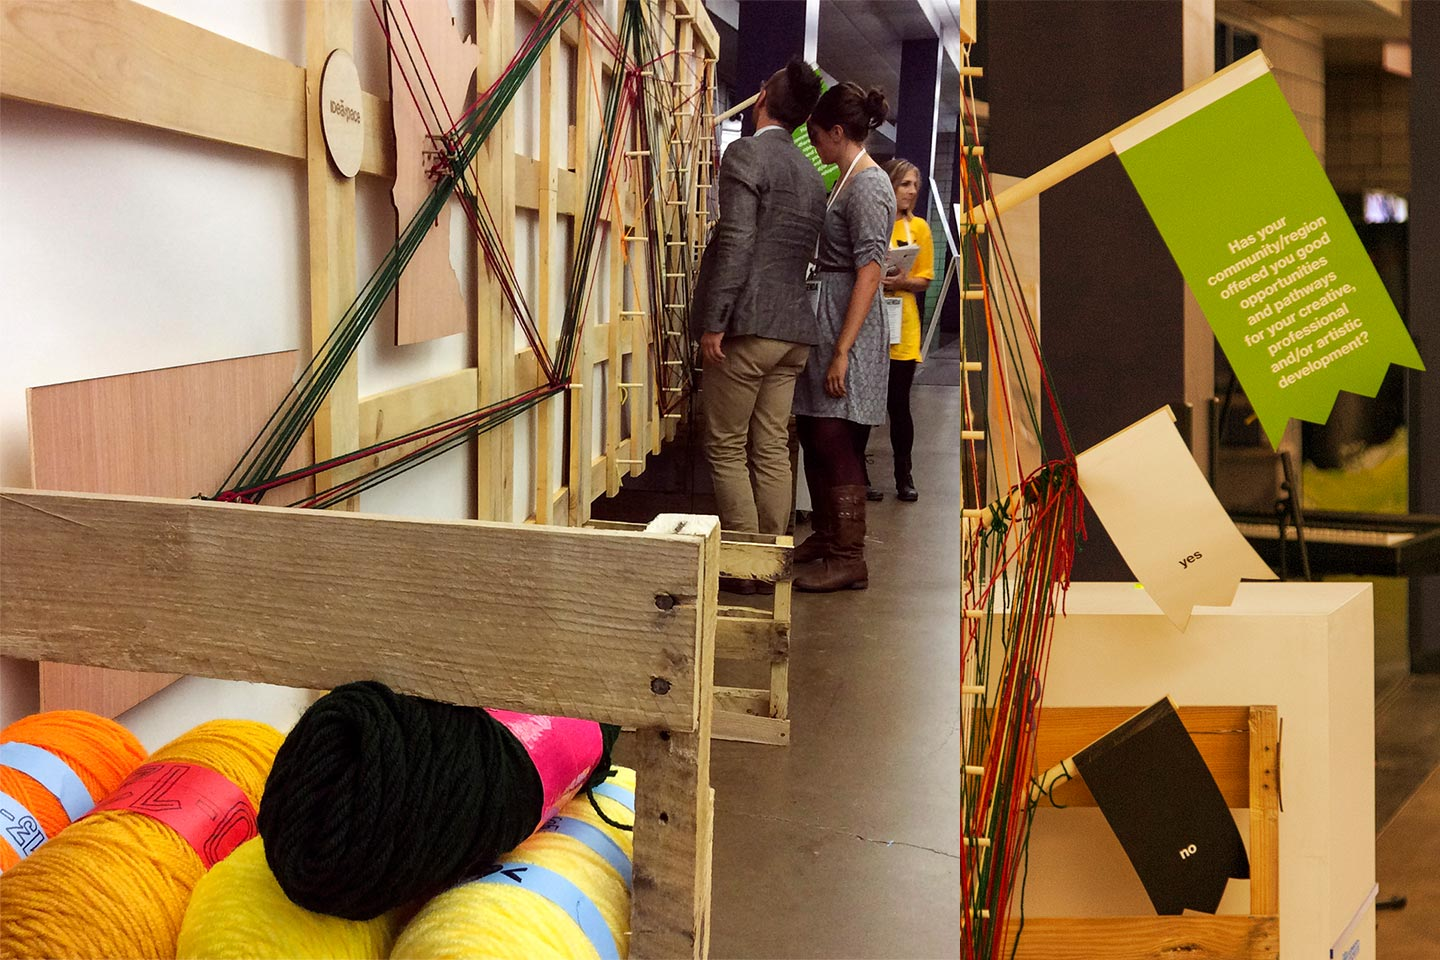 Group of people looking at wooden installation with yard in foreground